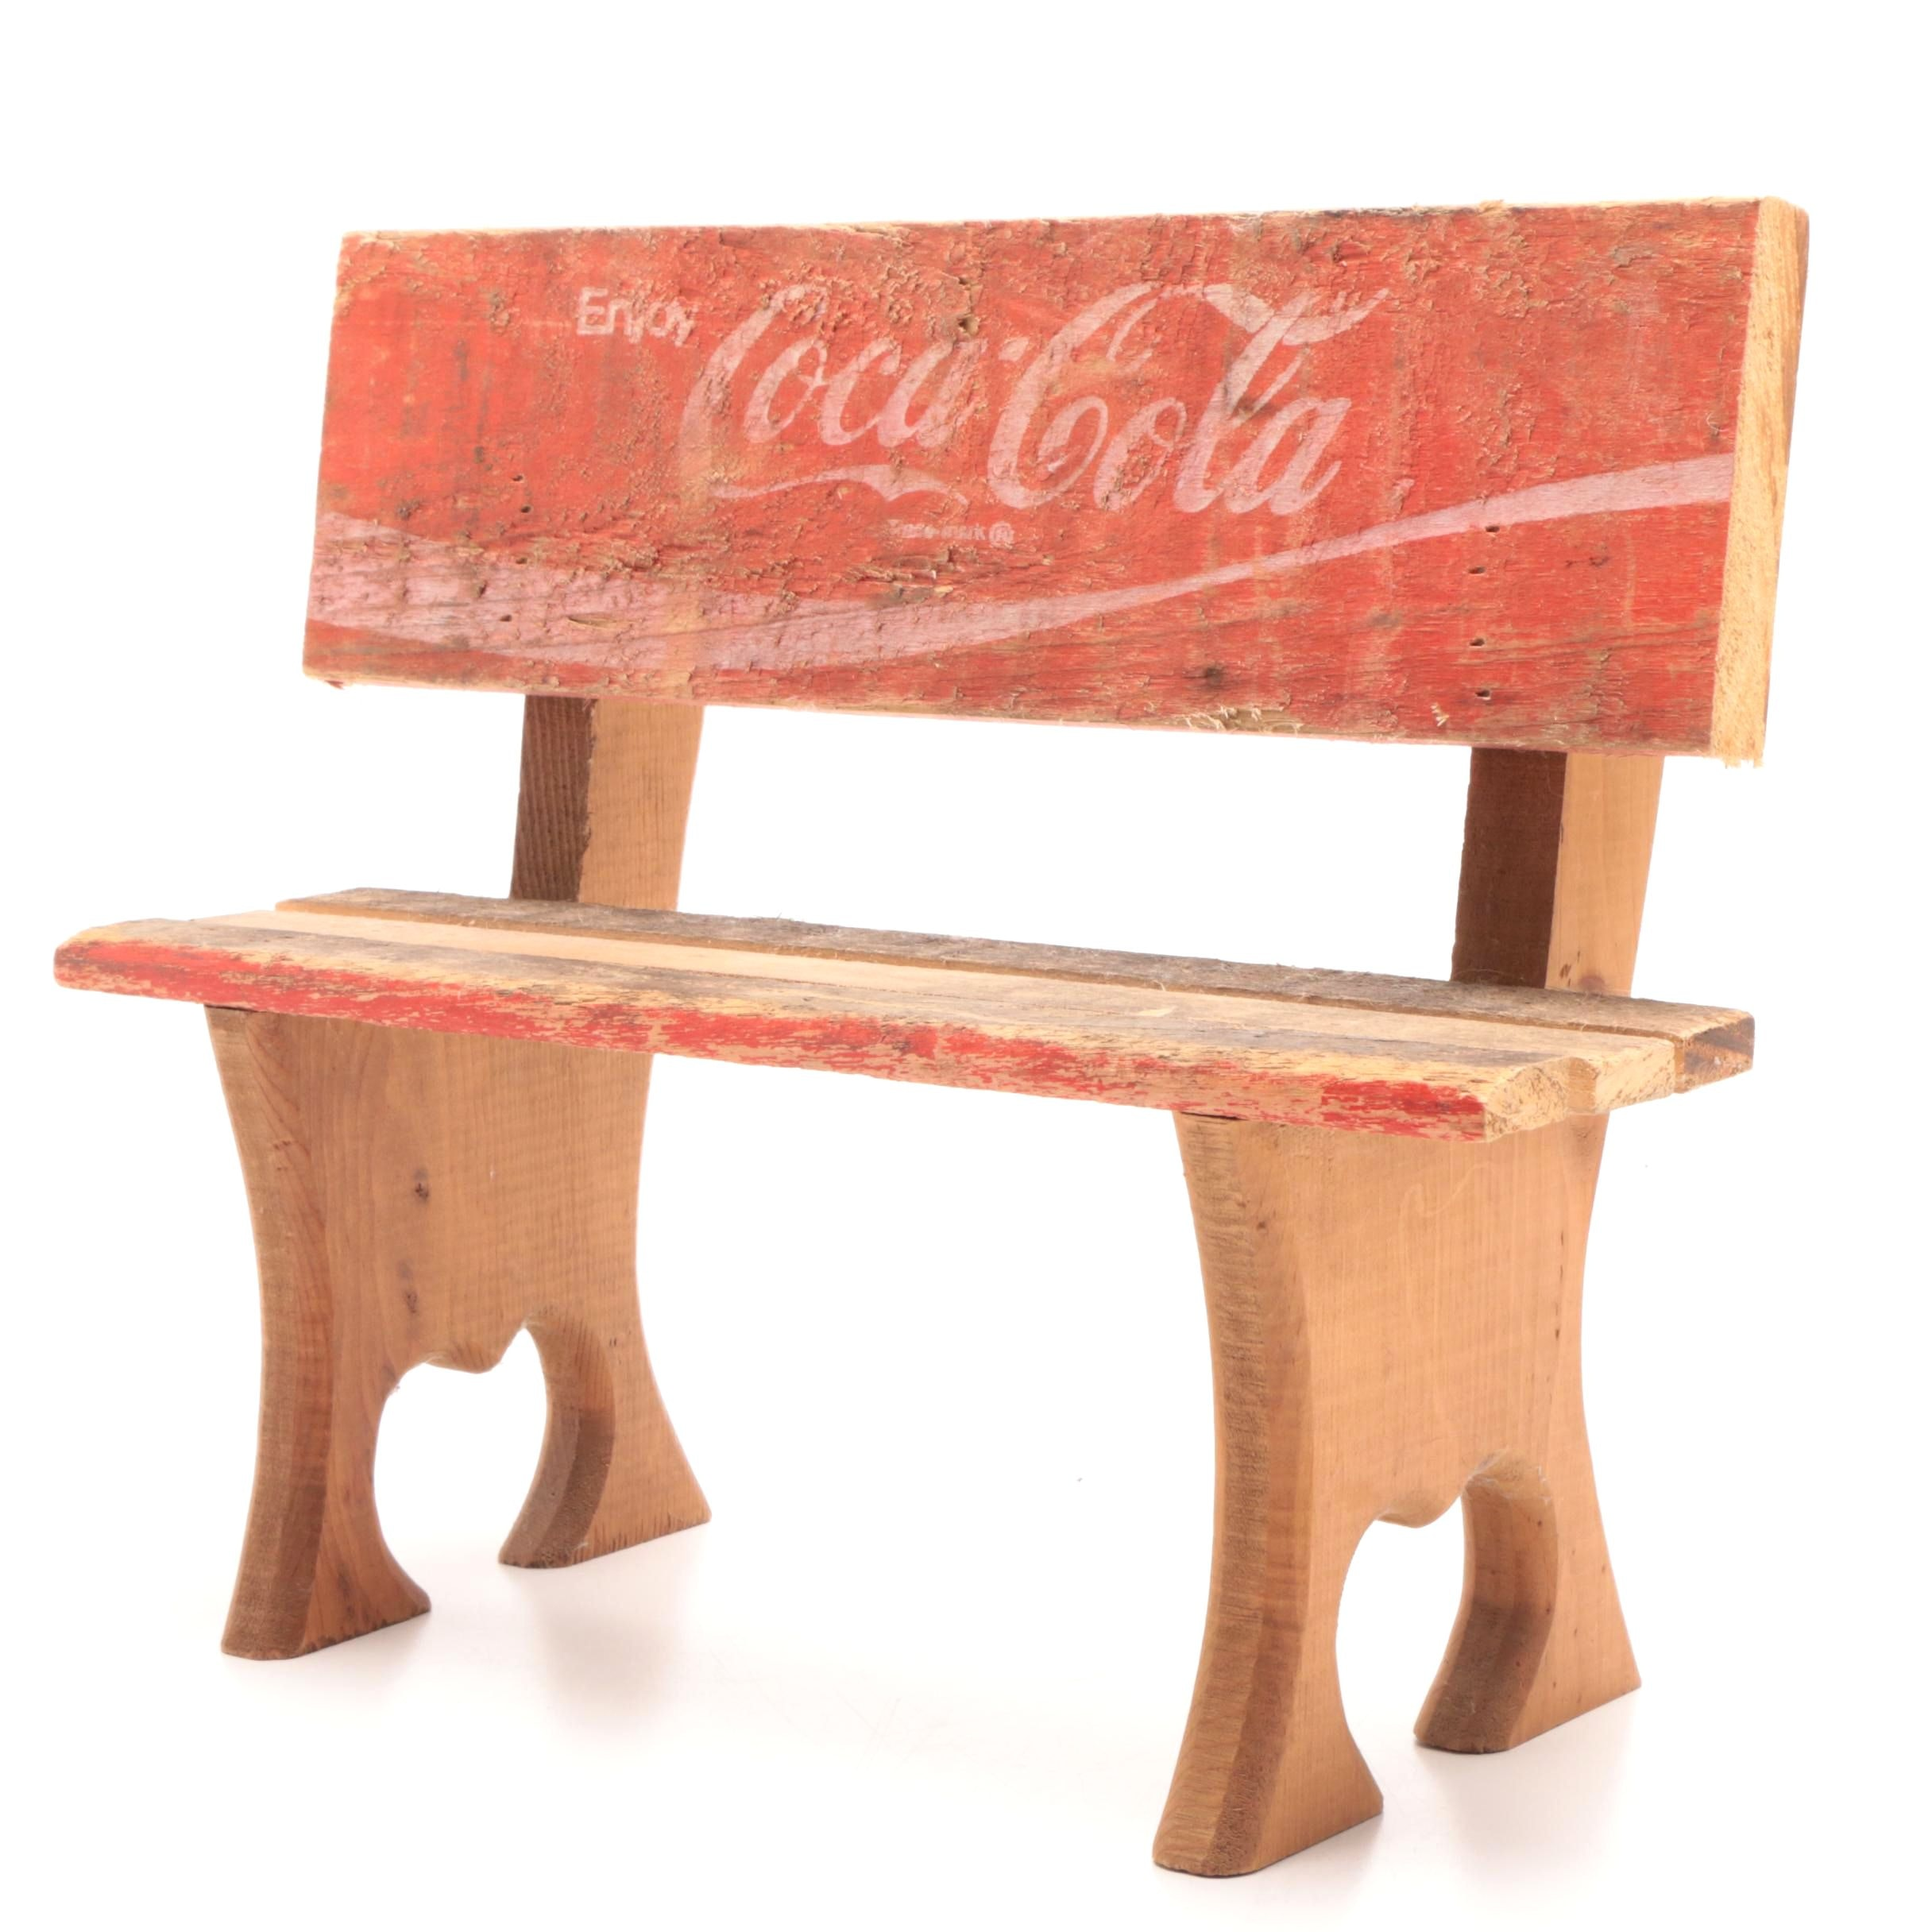 Coca-Cola Miniature Wooden Bench